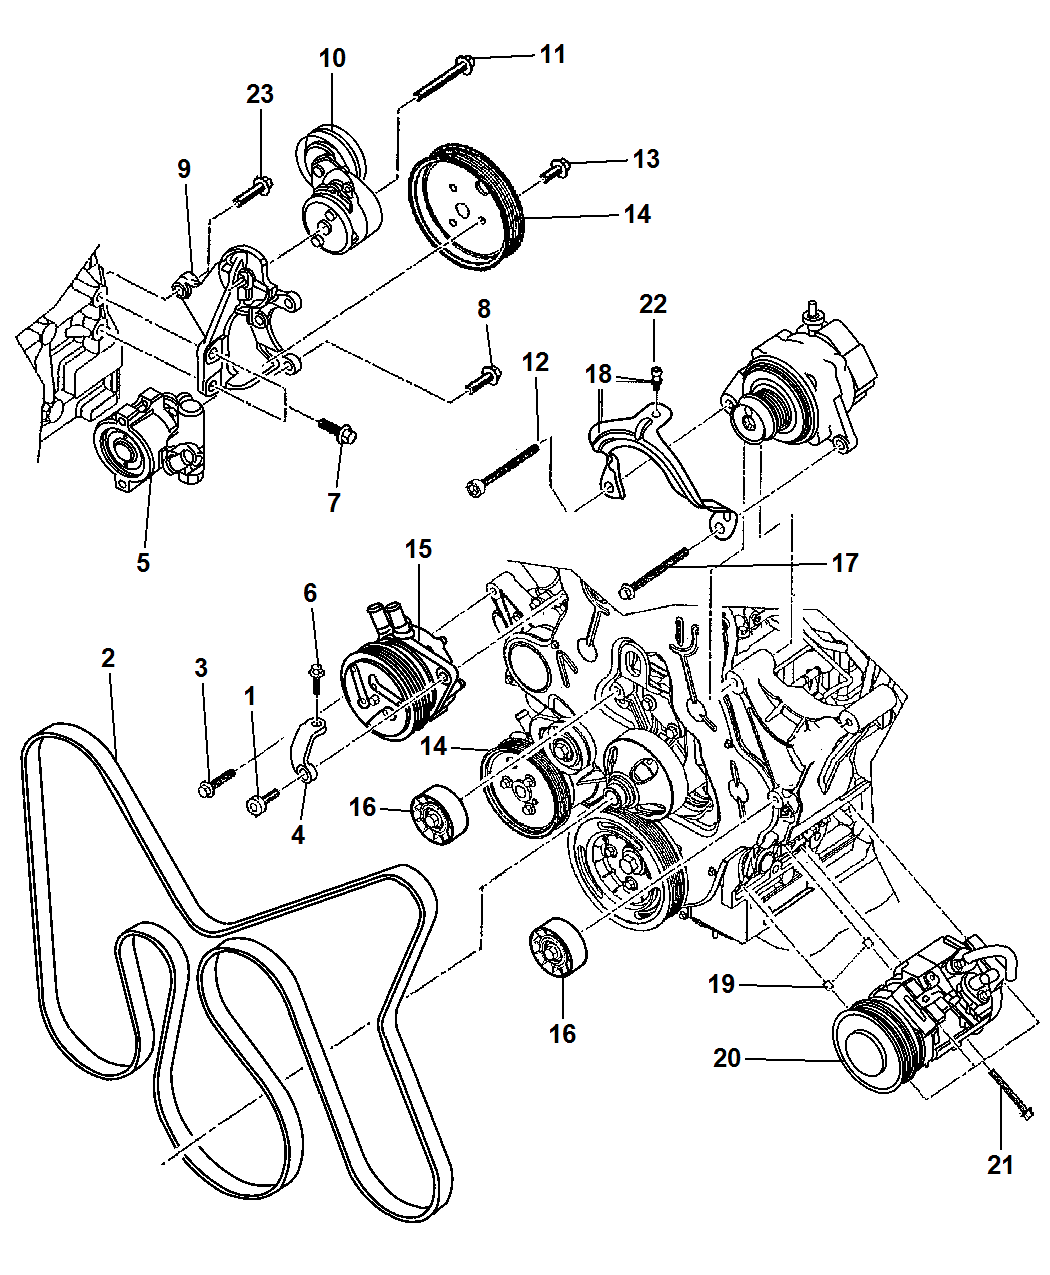 Jeep Liberty Engine Part Diagram Audi Gt Engine Diagram Bege Wiring Diagram